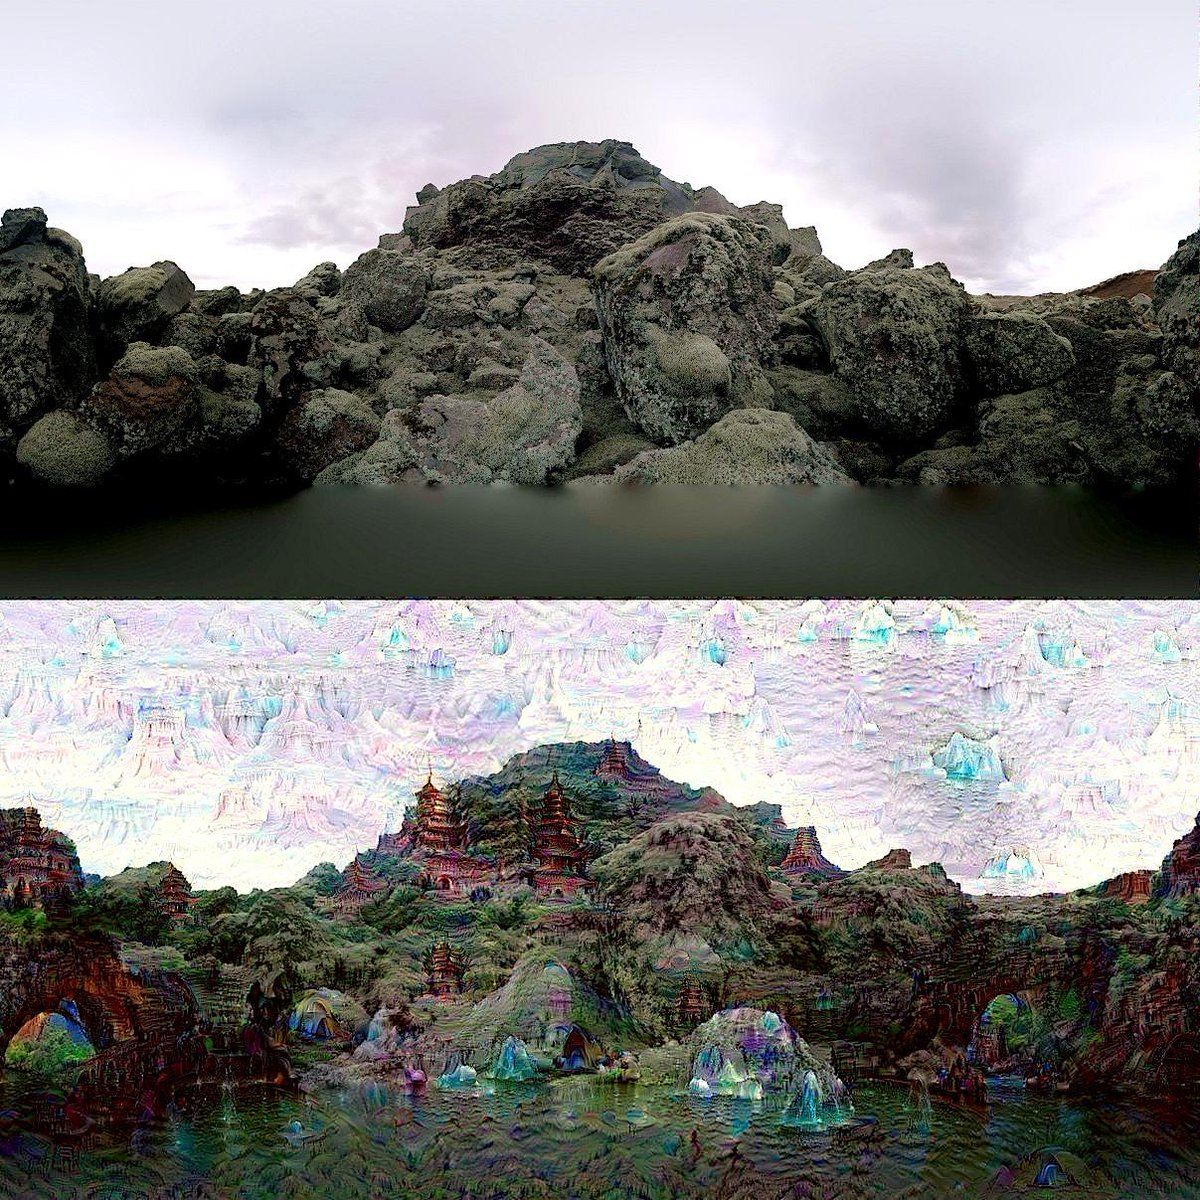 Make your own neural network inspired images with an open source visualization tool #deepdream http://t.co/oIxBHZ7Q5G http://t.co/d0IG43BMCa